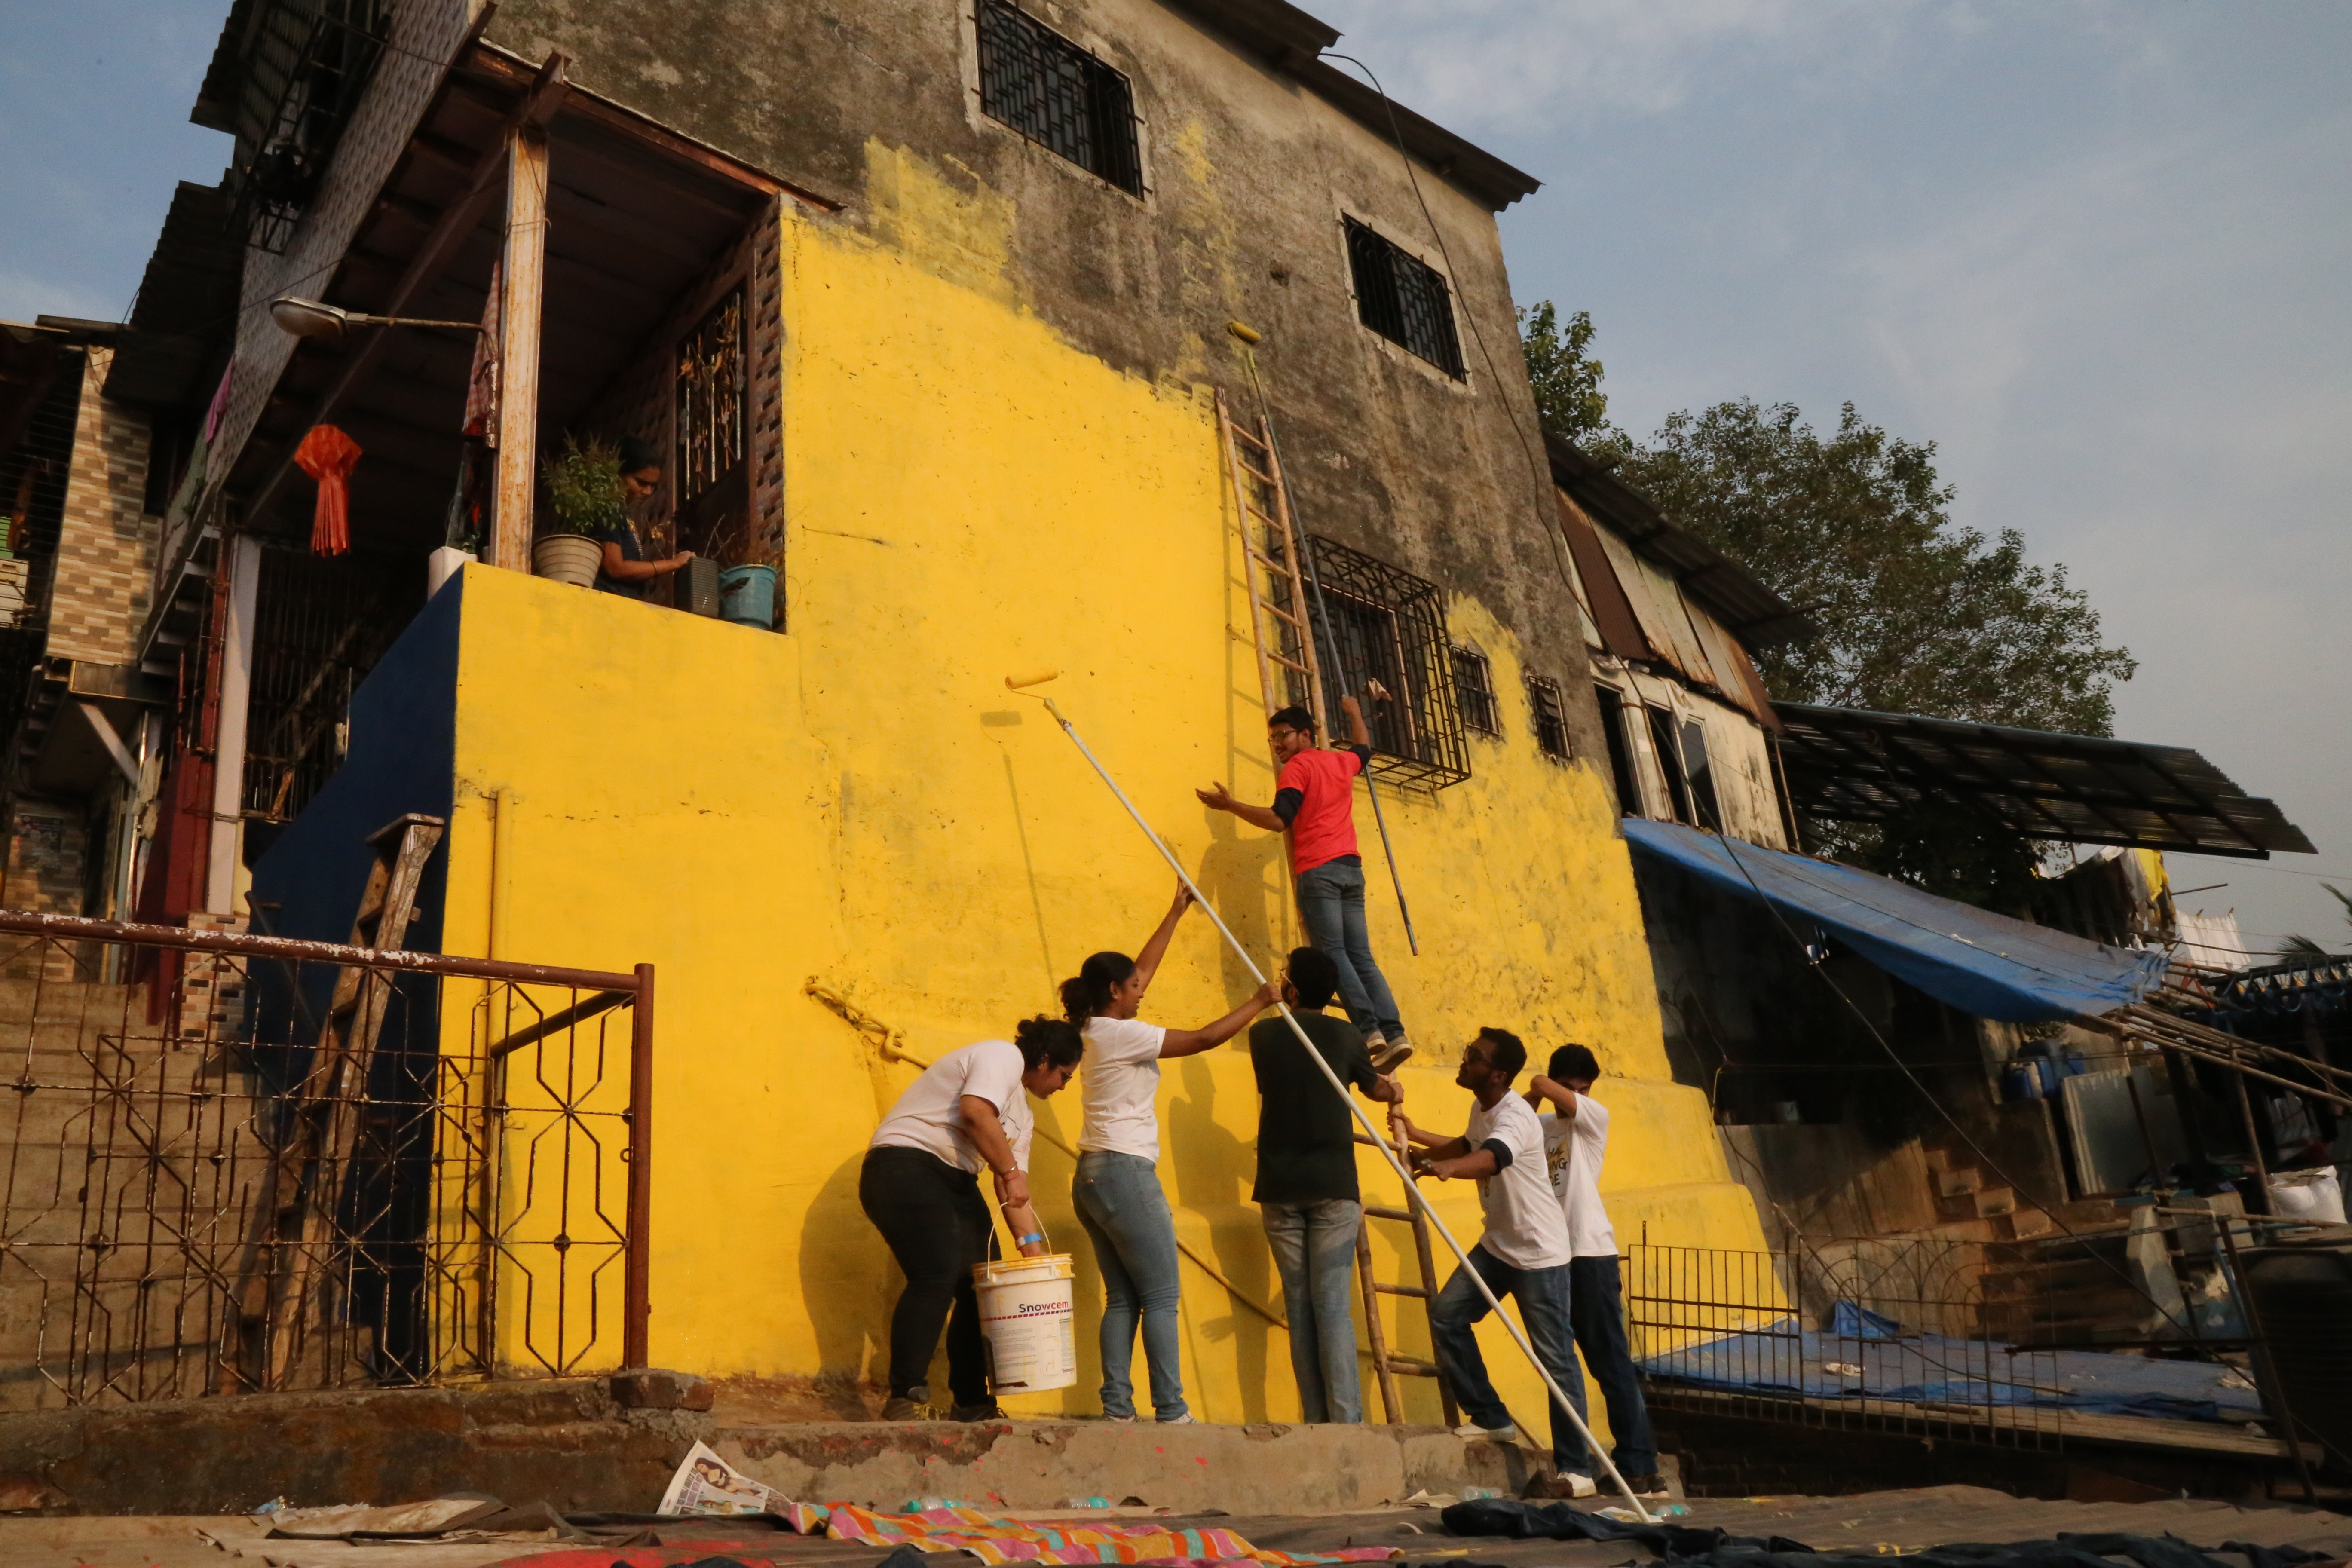 A slum in Asalpha, in Mumbai's eastern suburbs, got a colorful makeover through a charity initiative aimed at brightening slums, home to more than half the city's population.